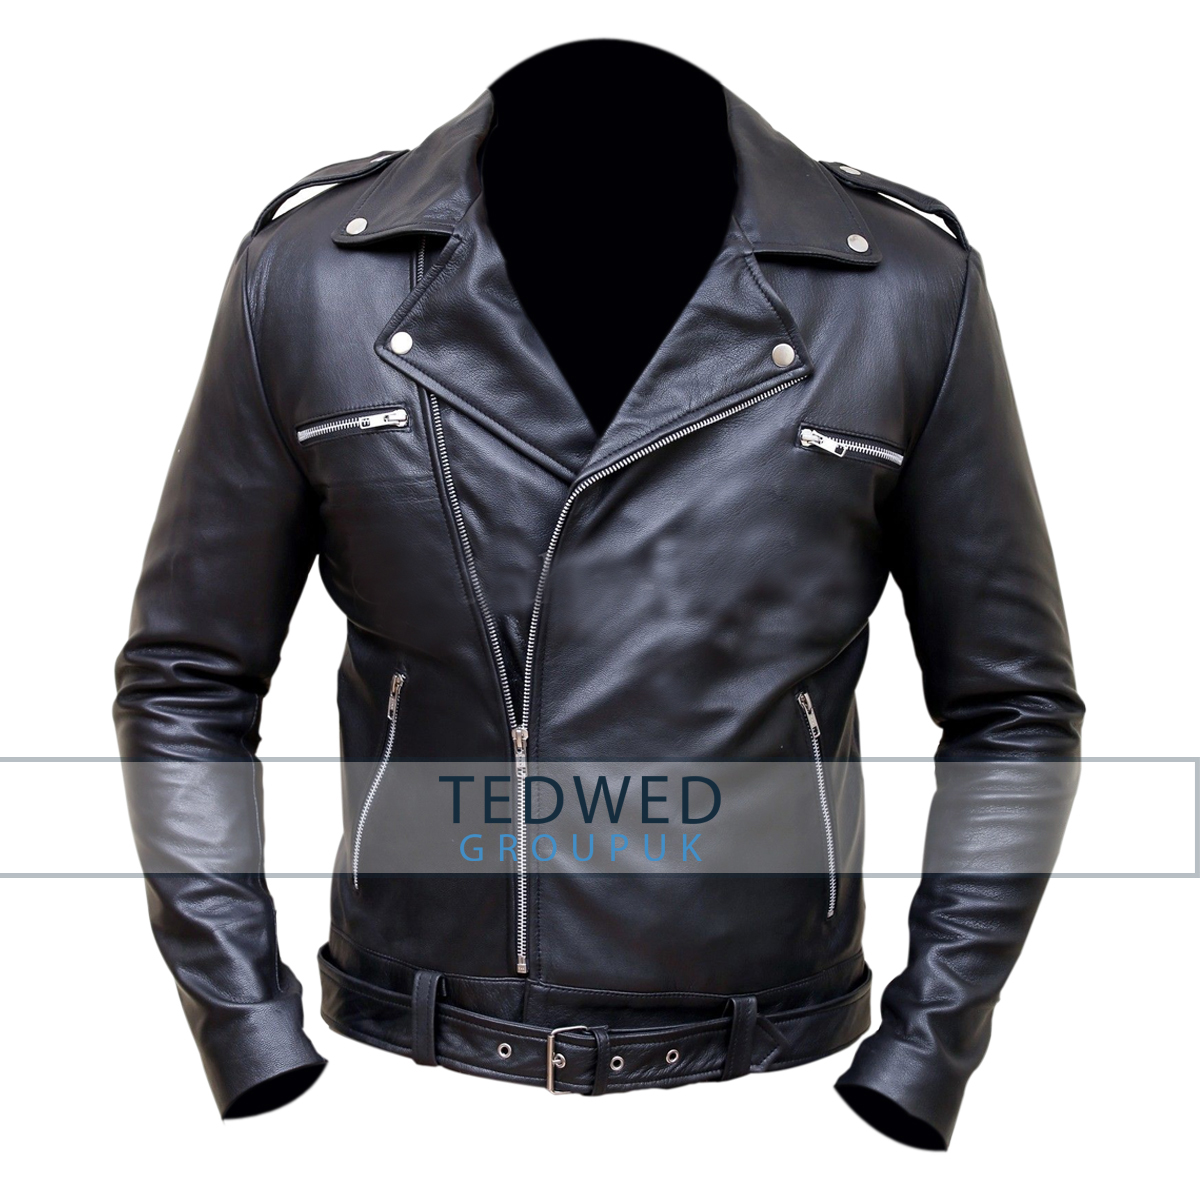 Jackets for men and women